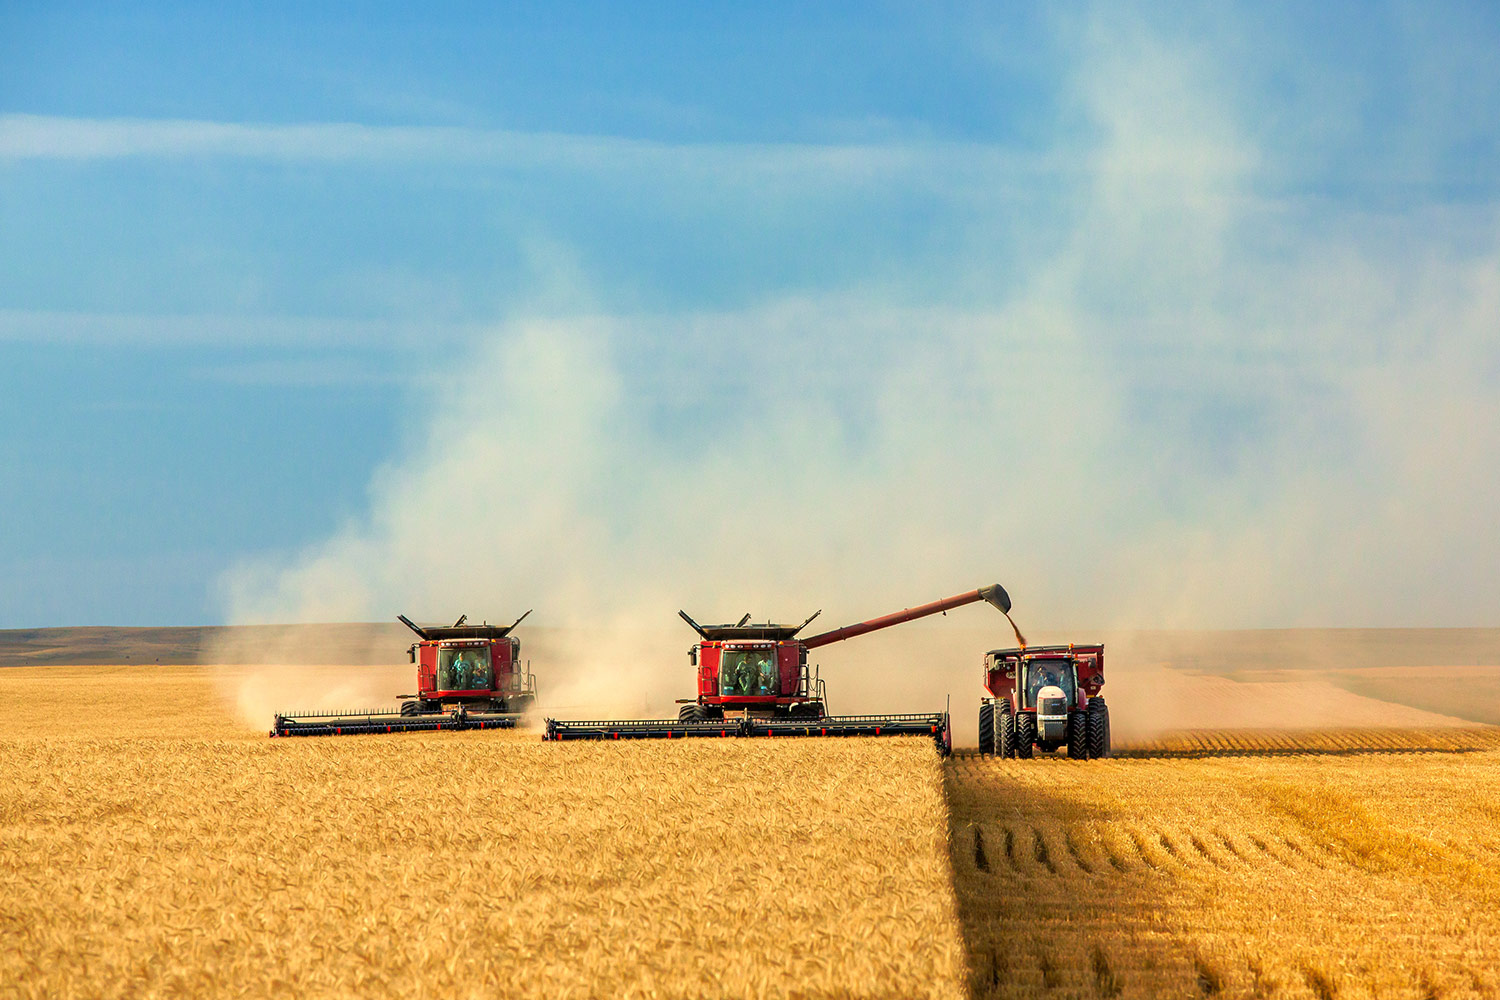 Combines and Tractor Working Together